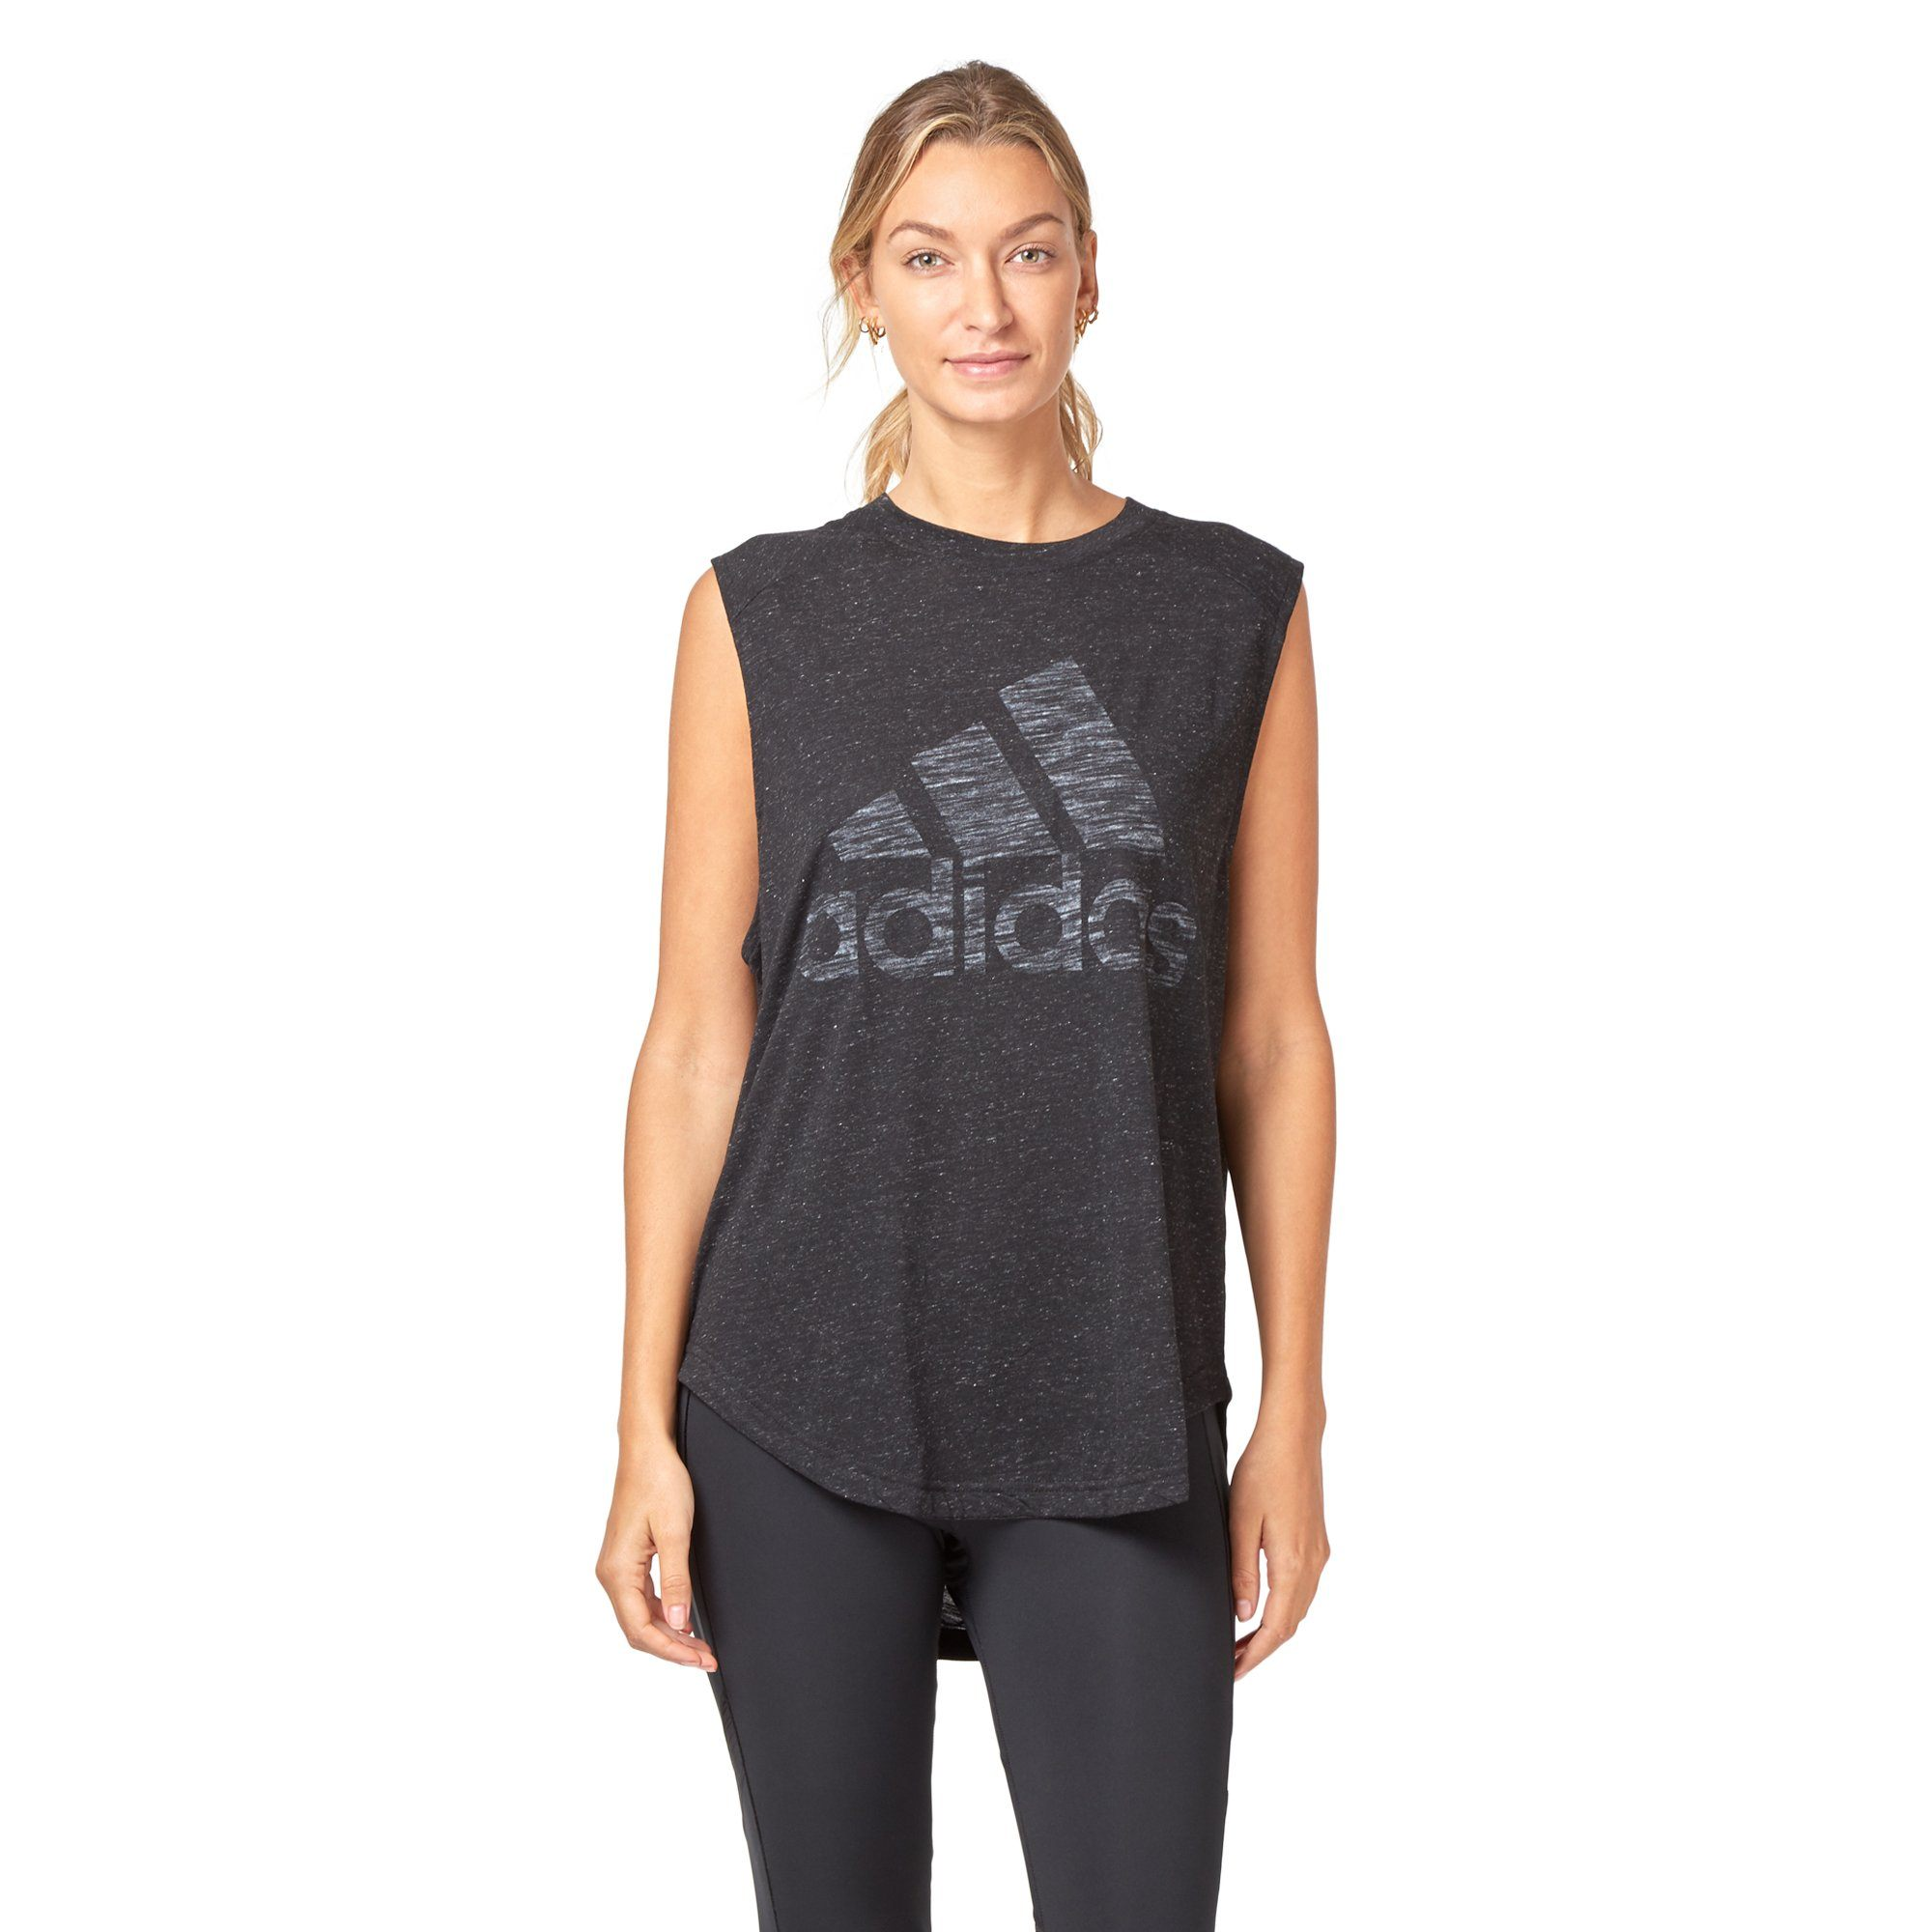 Adidas Women's ID Winners Muscle Tee - Black SportsPower Geelong  (2012420505659)